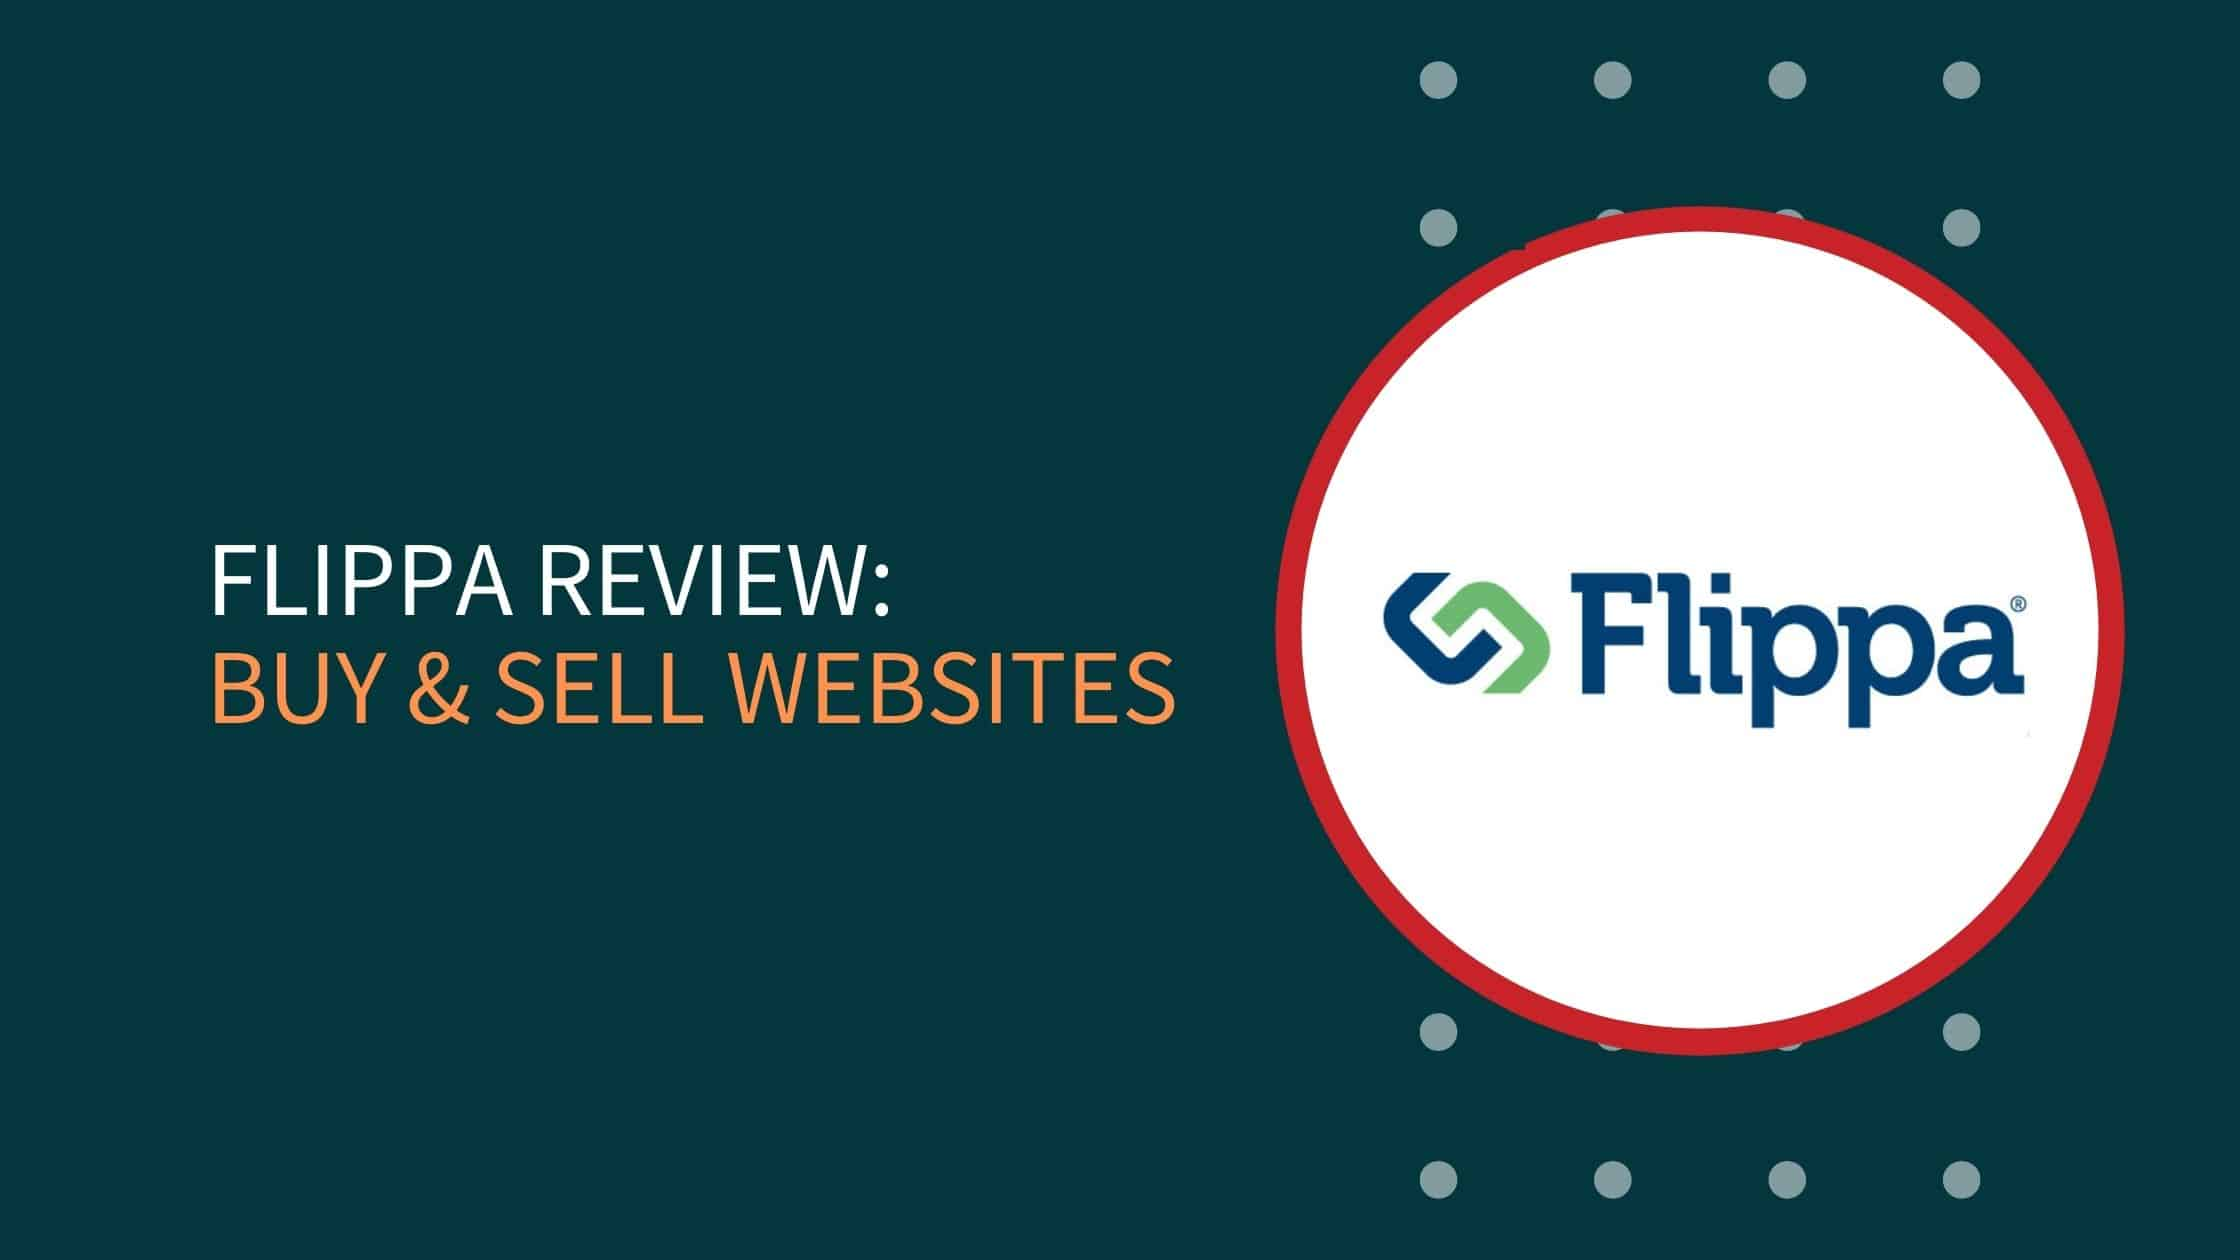 Flippa Review: BEST Platform To Buy & Sell Websites